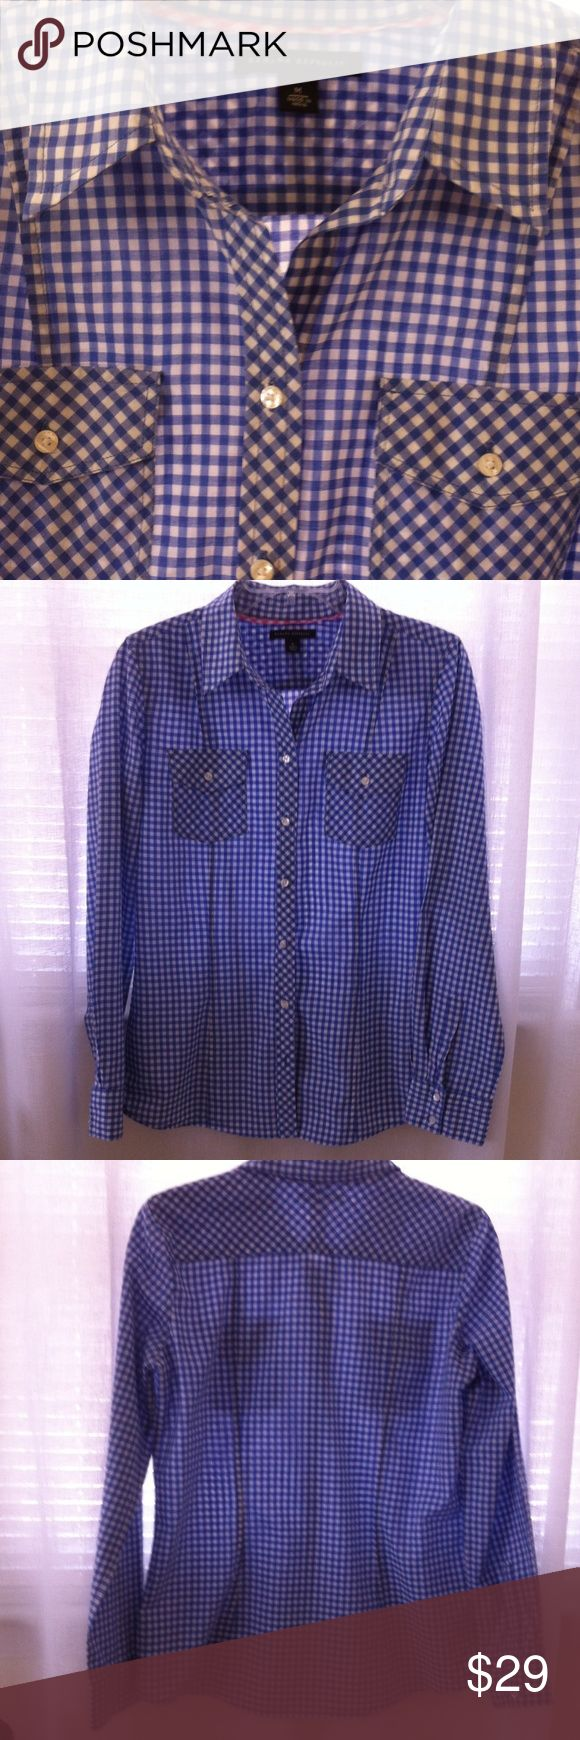 """Marina Blue Gingham Blouse NWOT Looks Great with black, navy, charcoal, or red. 100% cotton. No stretch. Made in India. Semi fitted with high end details. Back and front seams for a custom fit. Bust is 36. Length 25"""". Banana Republic Tops Blouses"""